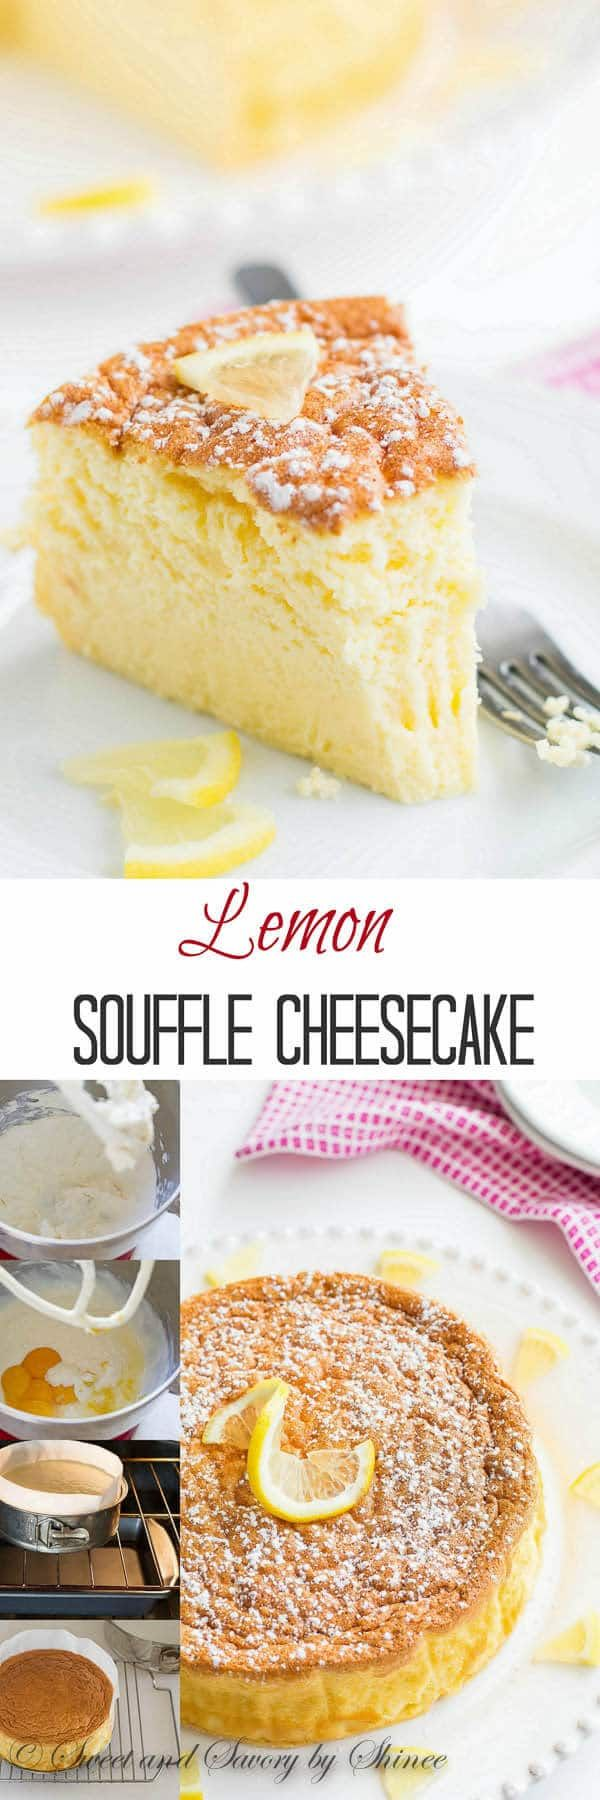 With less than 5 ingredients, this dreamy light lemon souffle cheesecake is the perfect treat to welcome long-awaited spring!